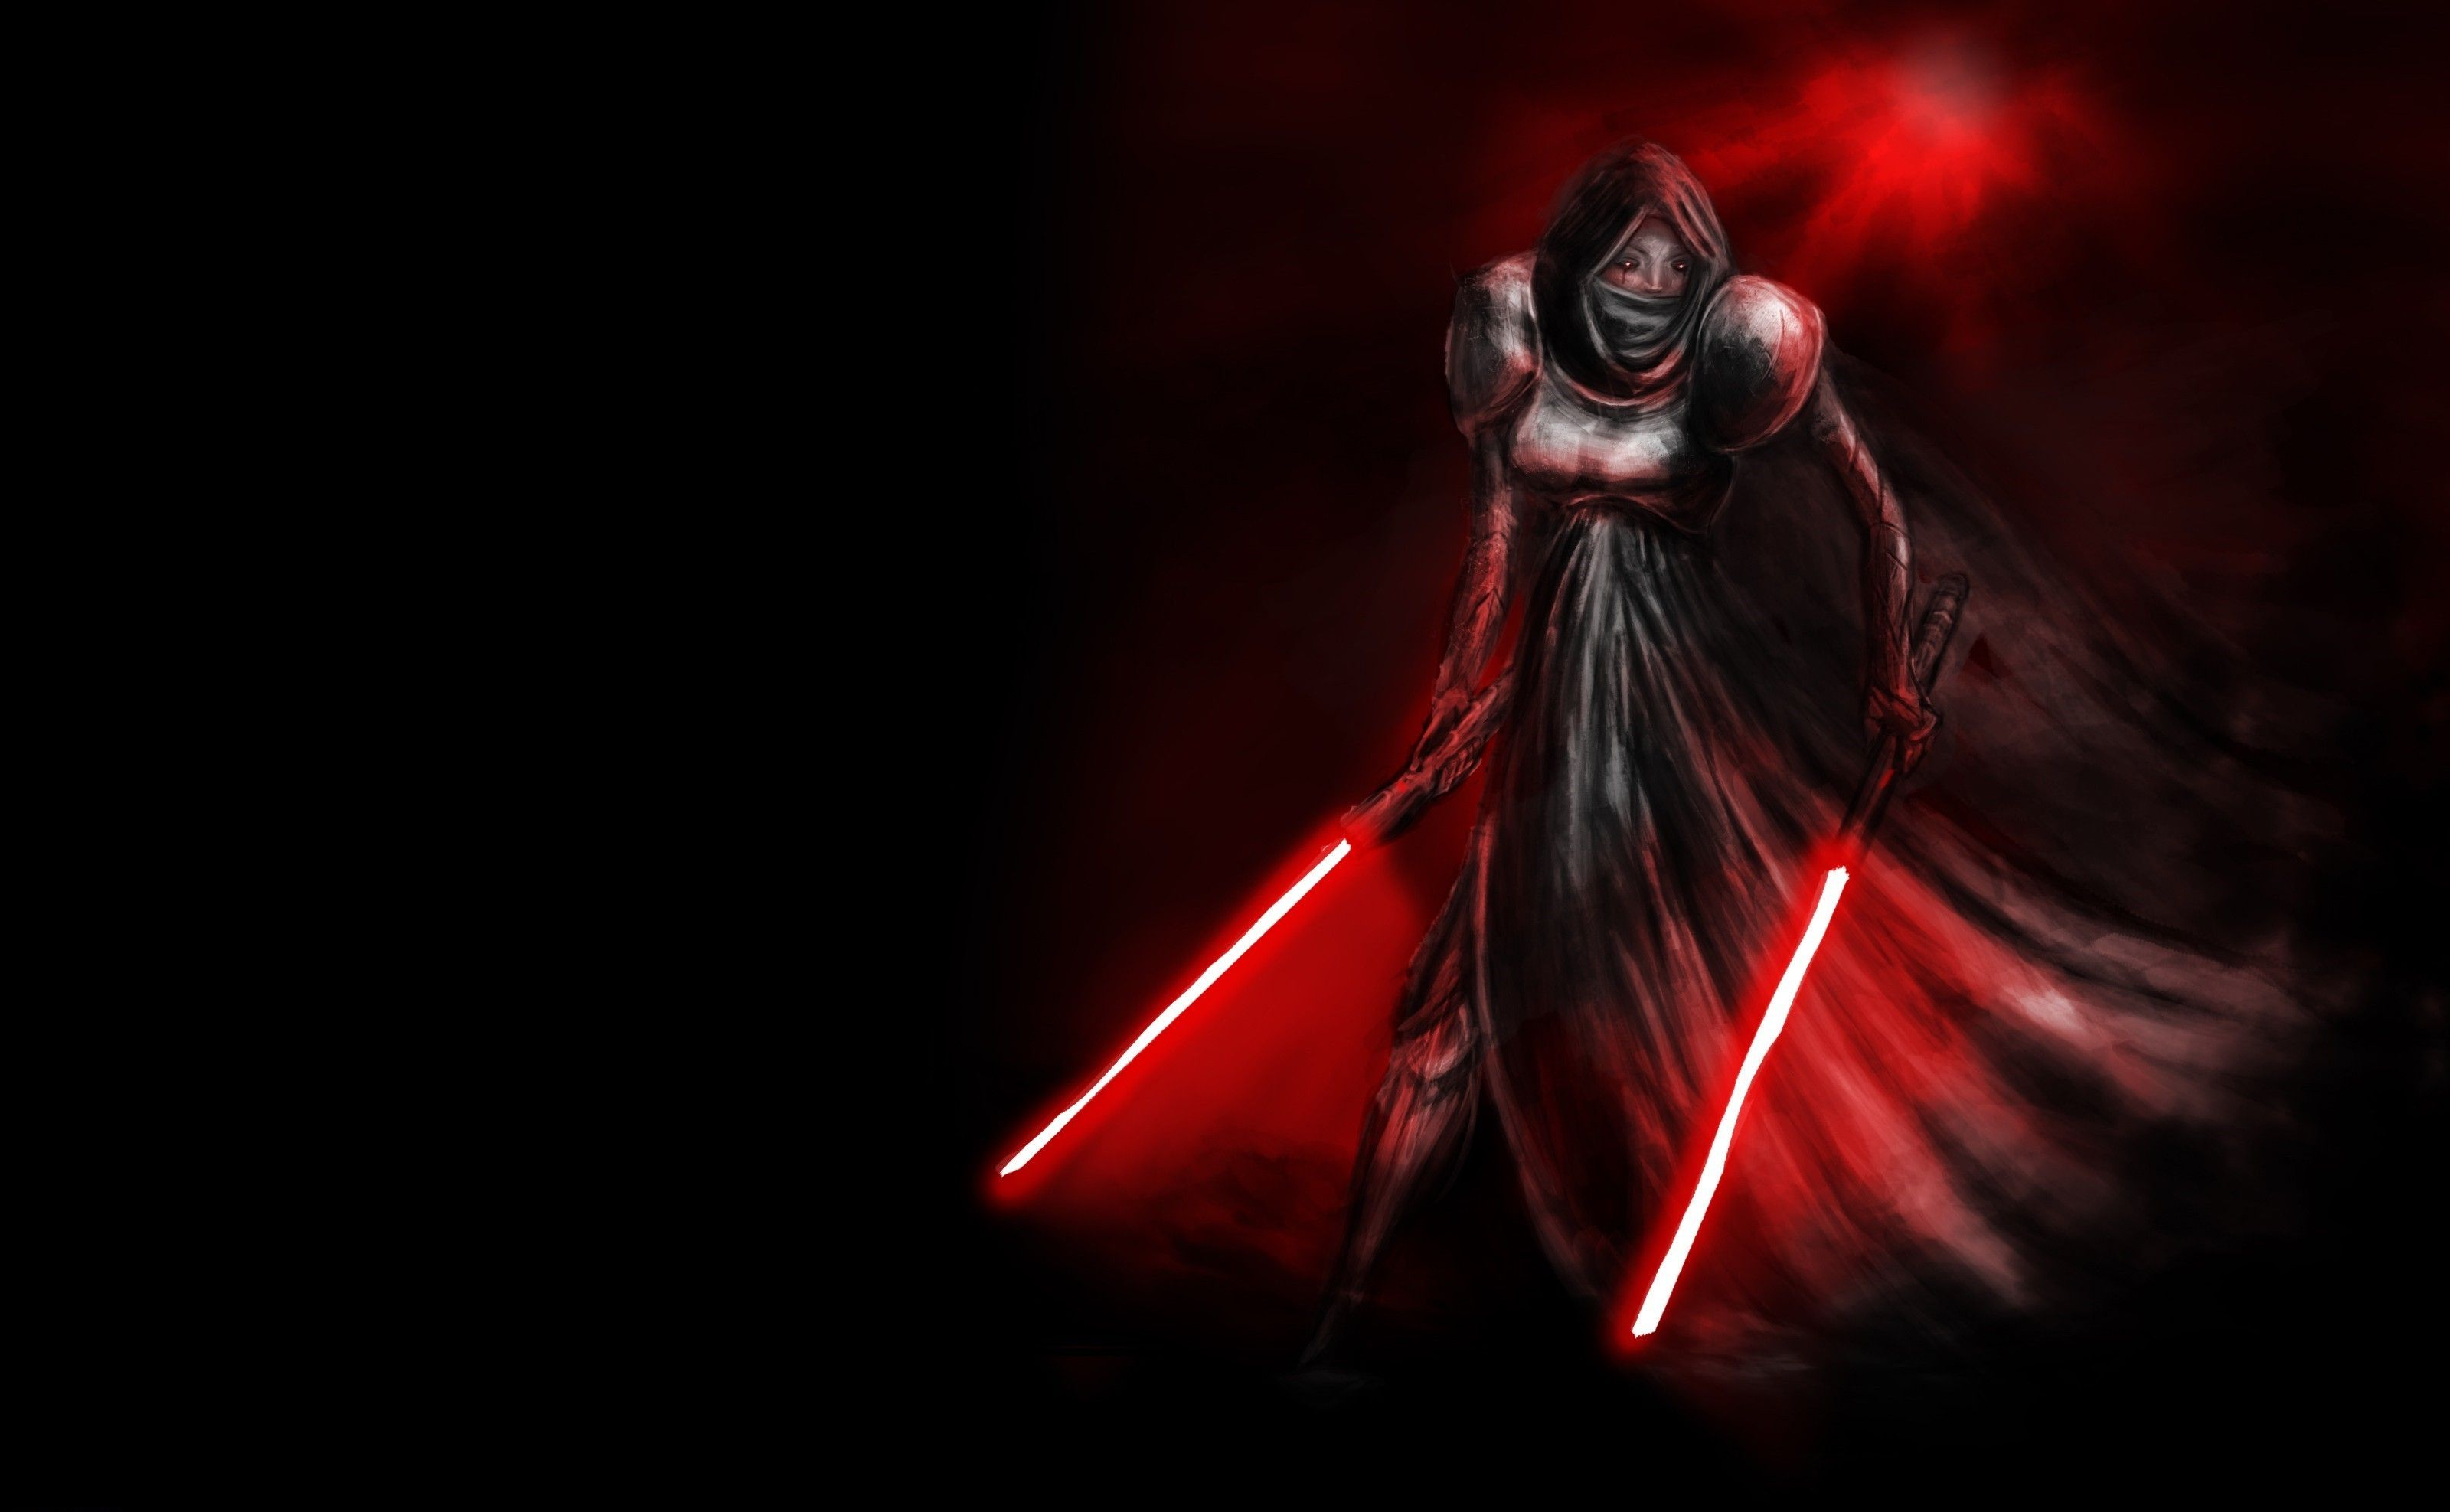 Star Wars Wallpapers Lightsaber Duel